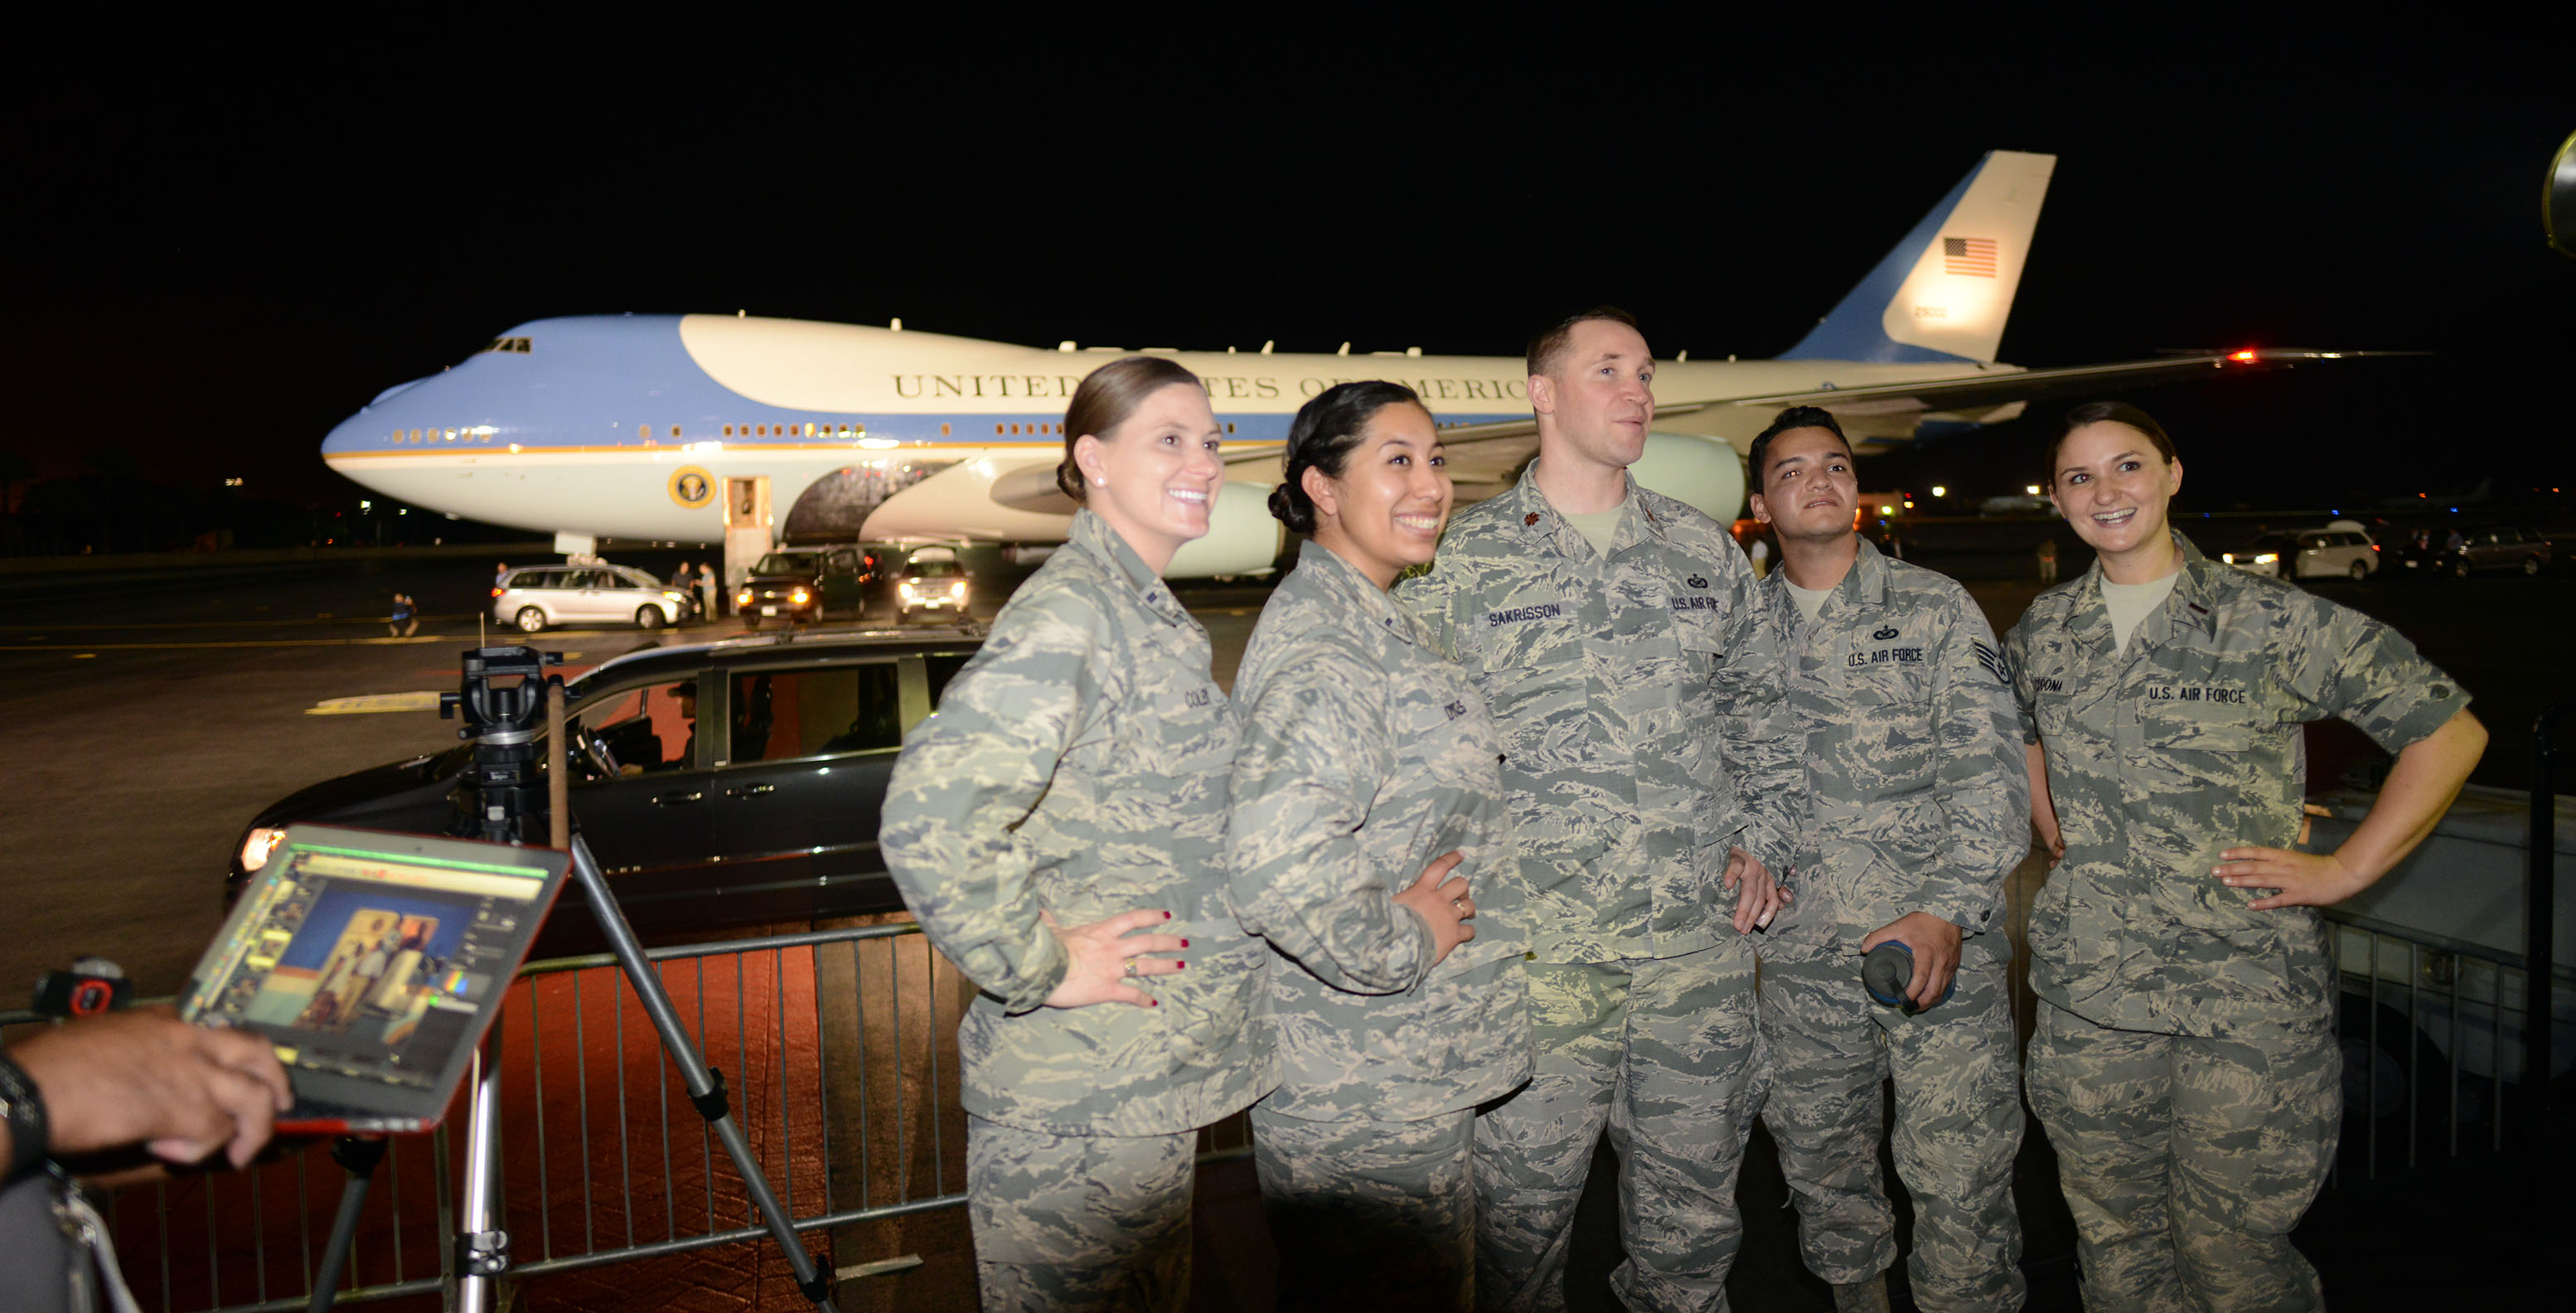 Air Force personnel pose for photographs in front of Air Force One.